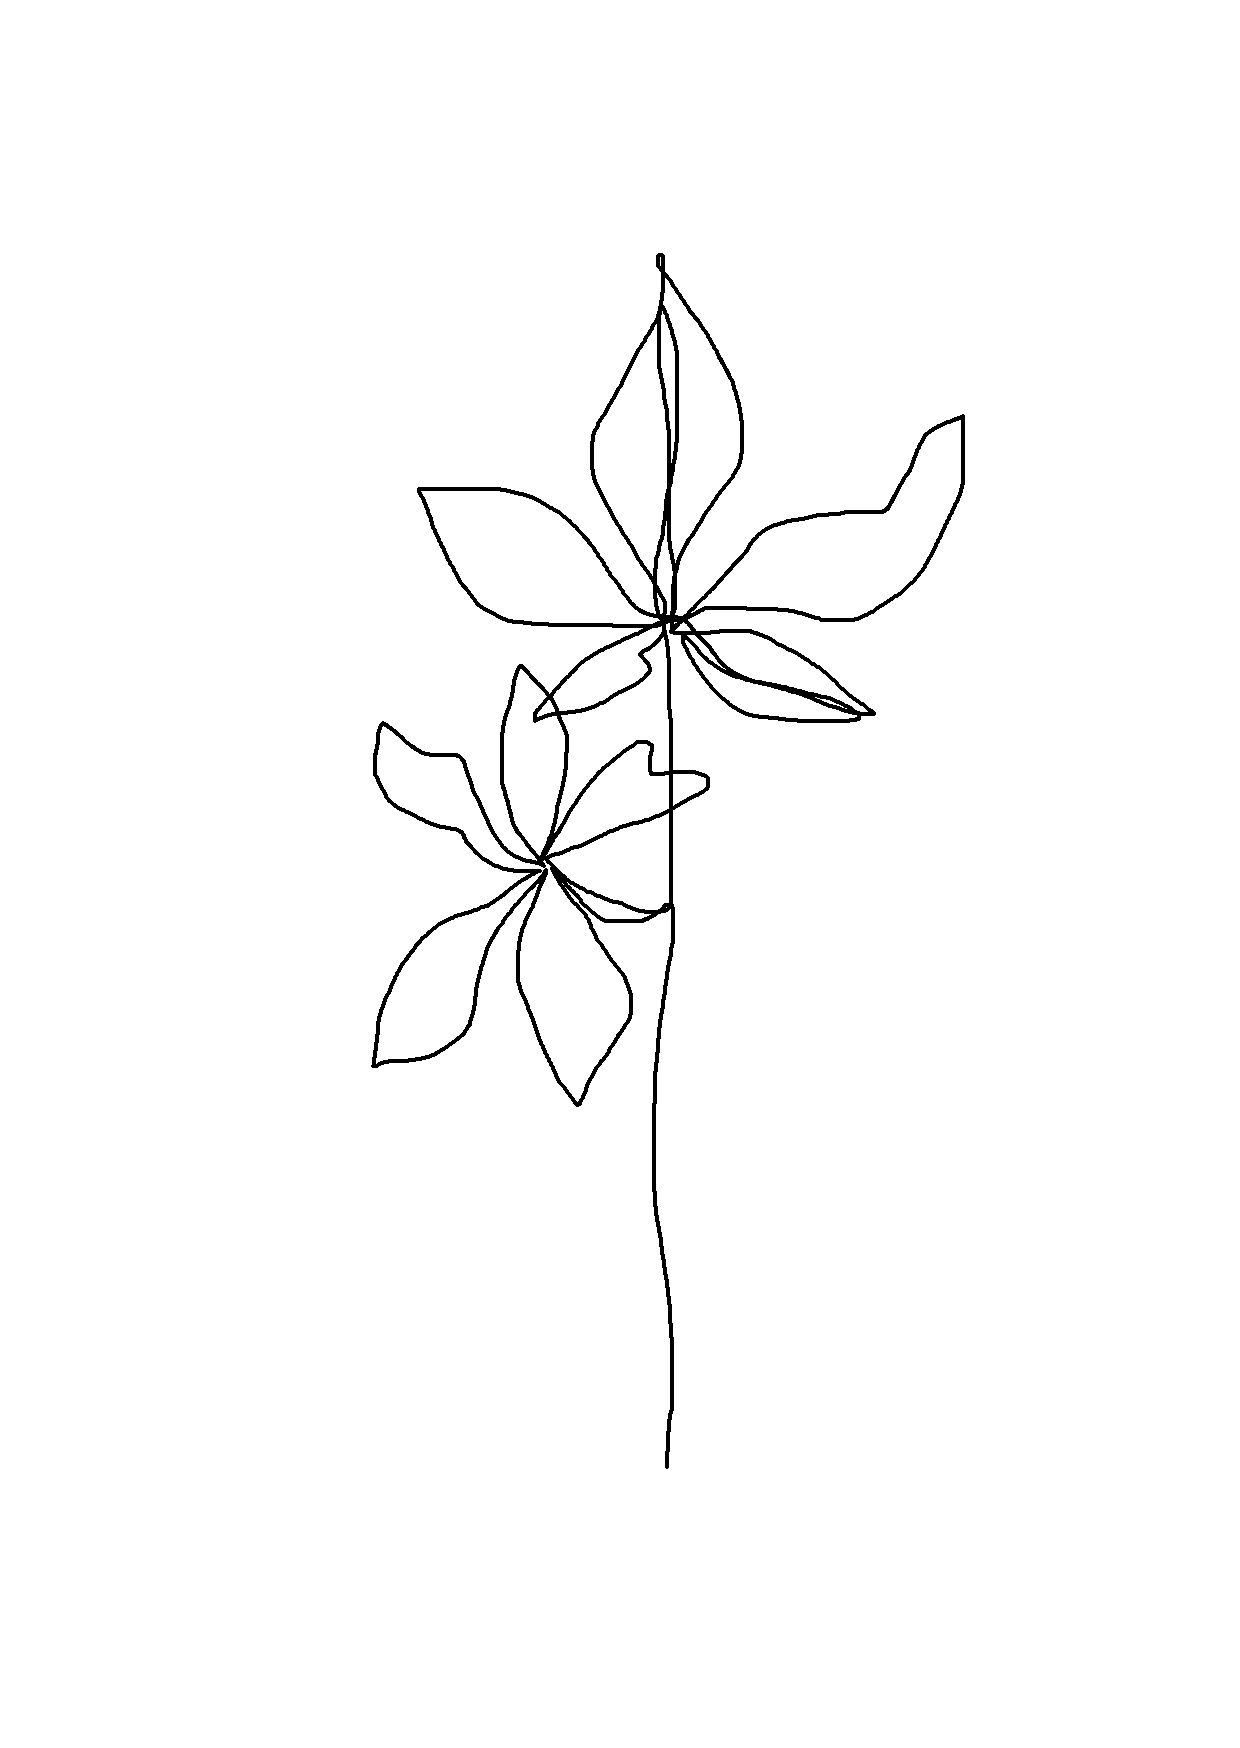 Line Drawing Instagram : One line minimal artwork plants and leaves minimalist